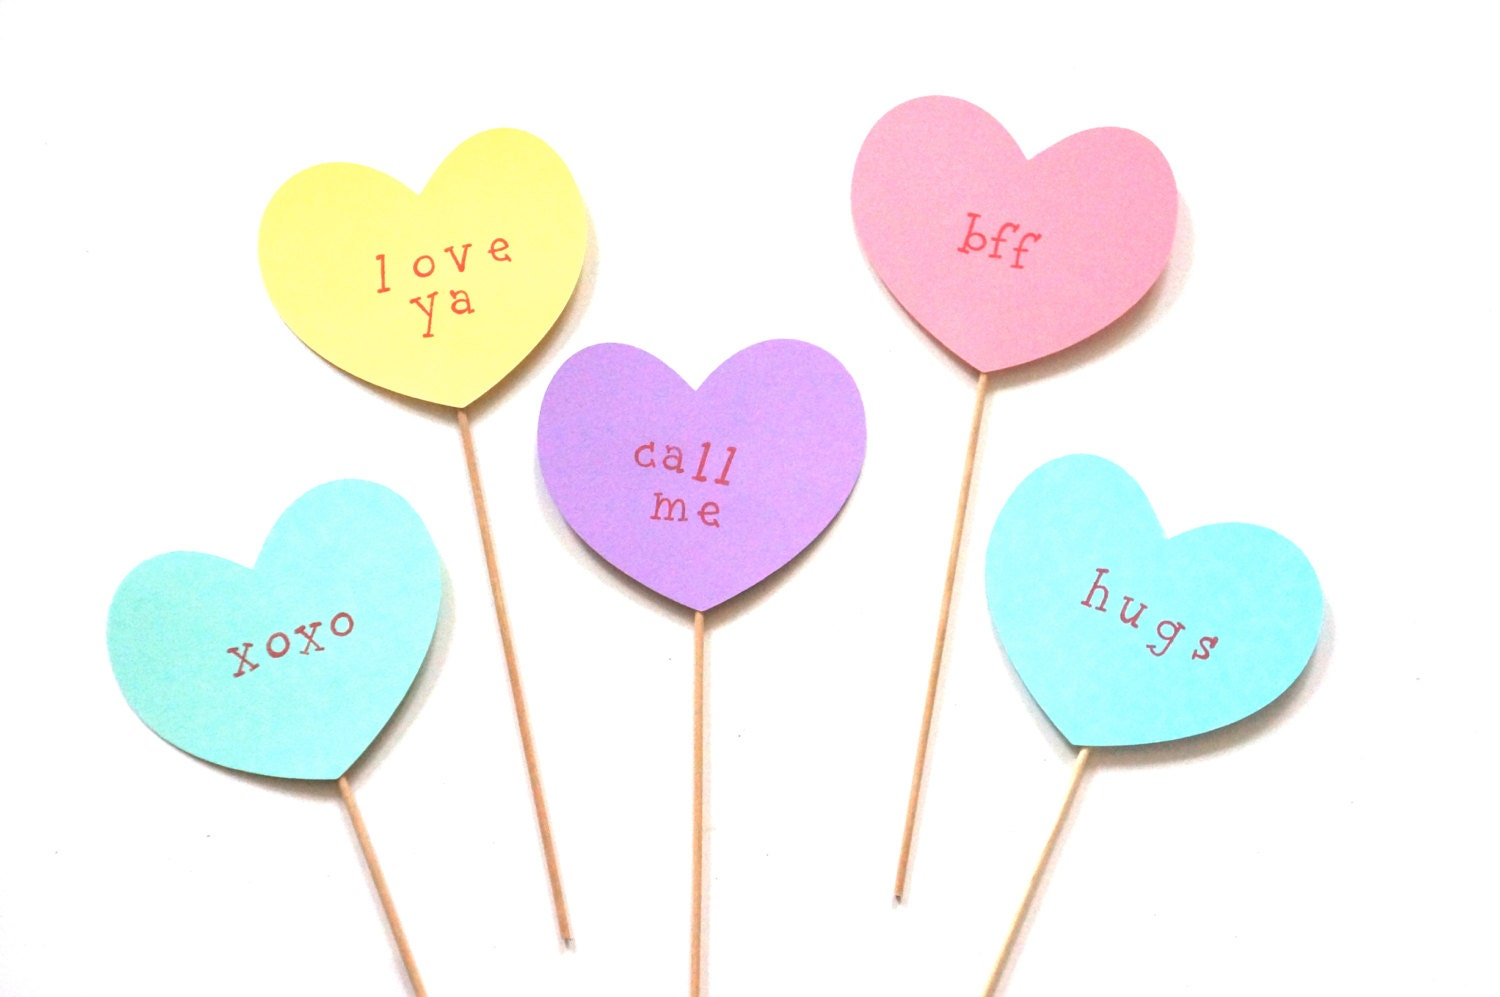 Valentines Day Photo Booth Prop Set 5 Conversation Hearts On Etsy